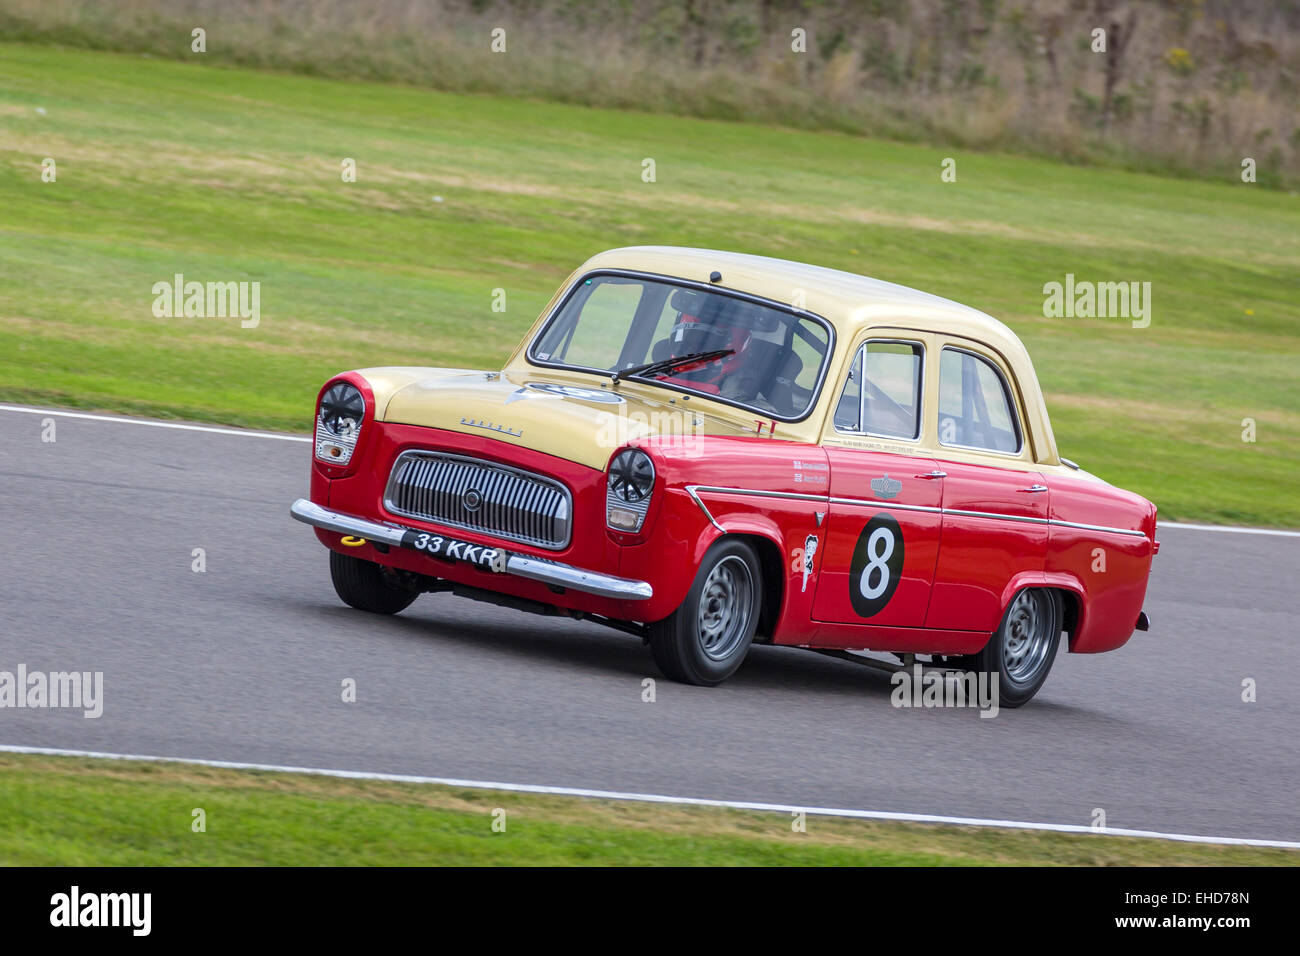 1959 Ford Prefect 107E with driver James Martin in the St Mary's Trophy race at the 2014 Goodwood Revival, Sussex, Stock Photo